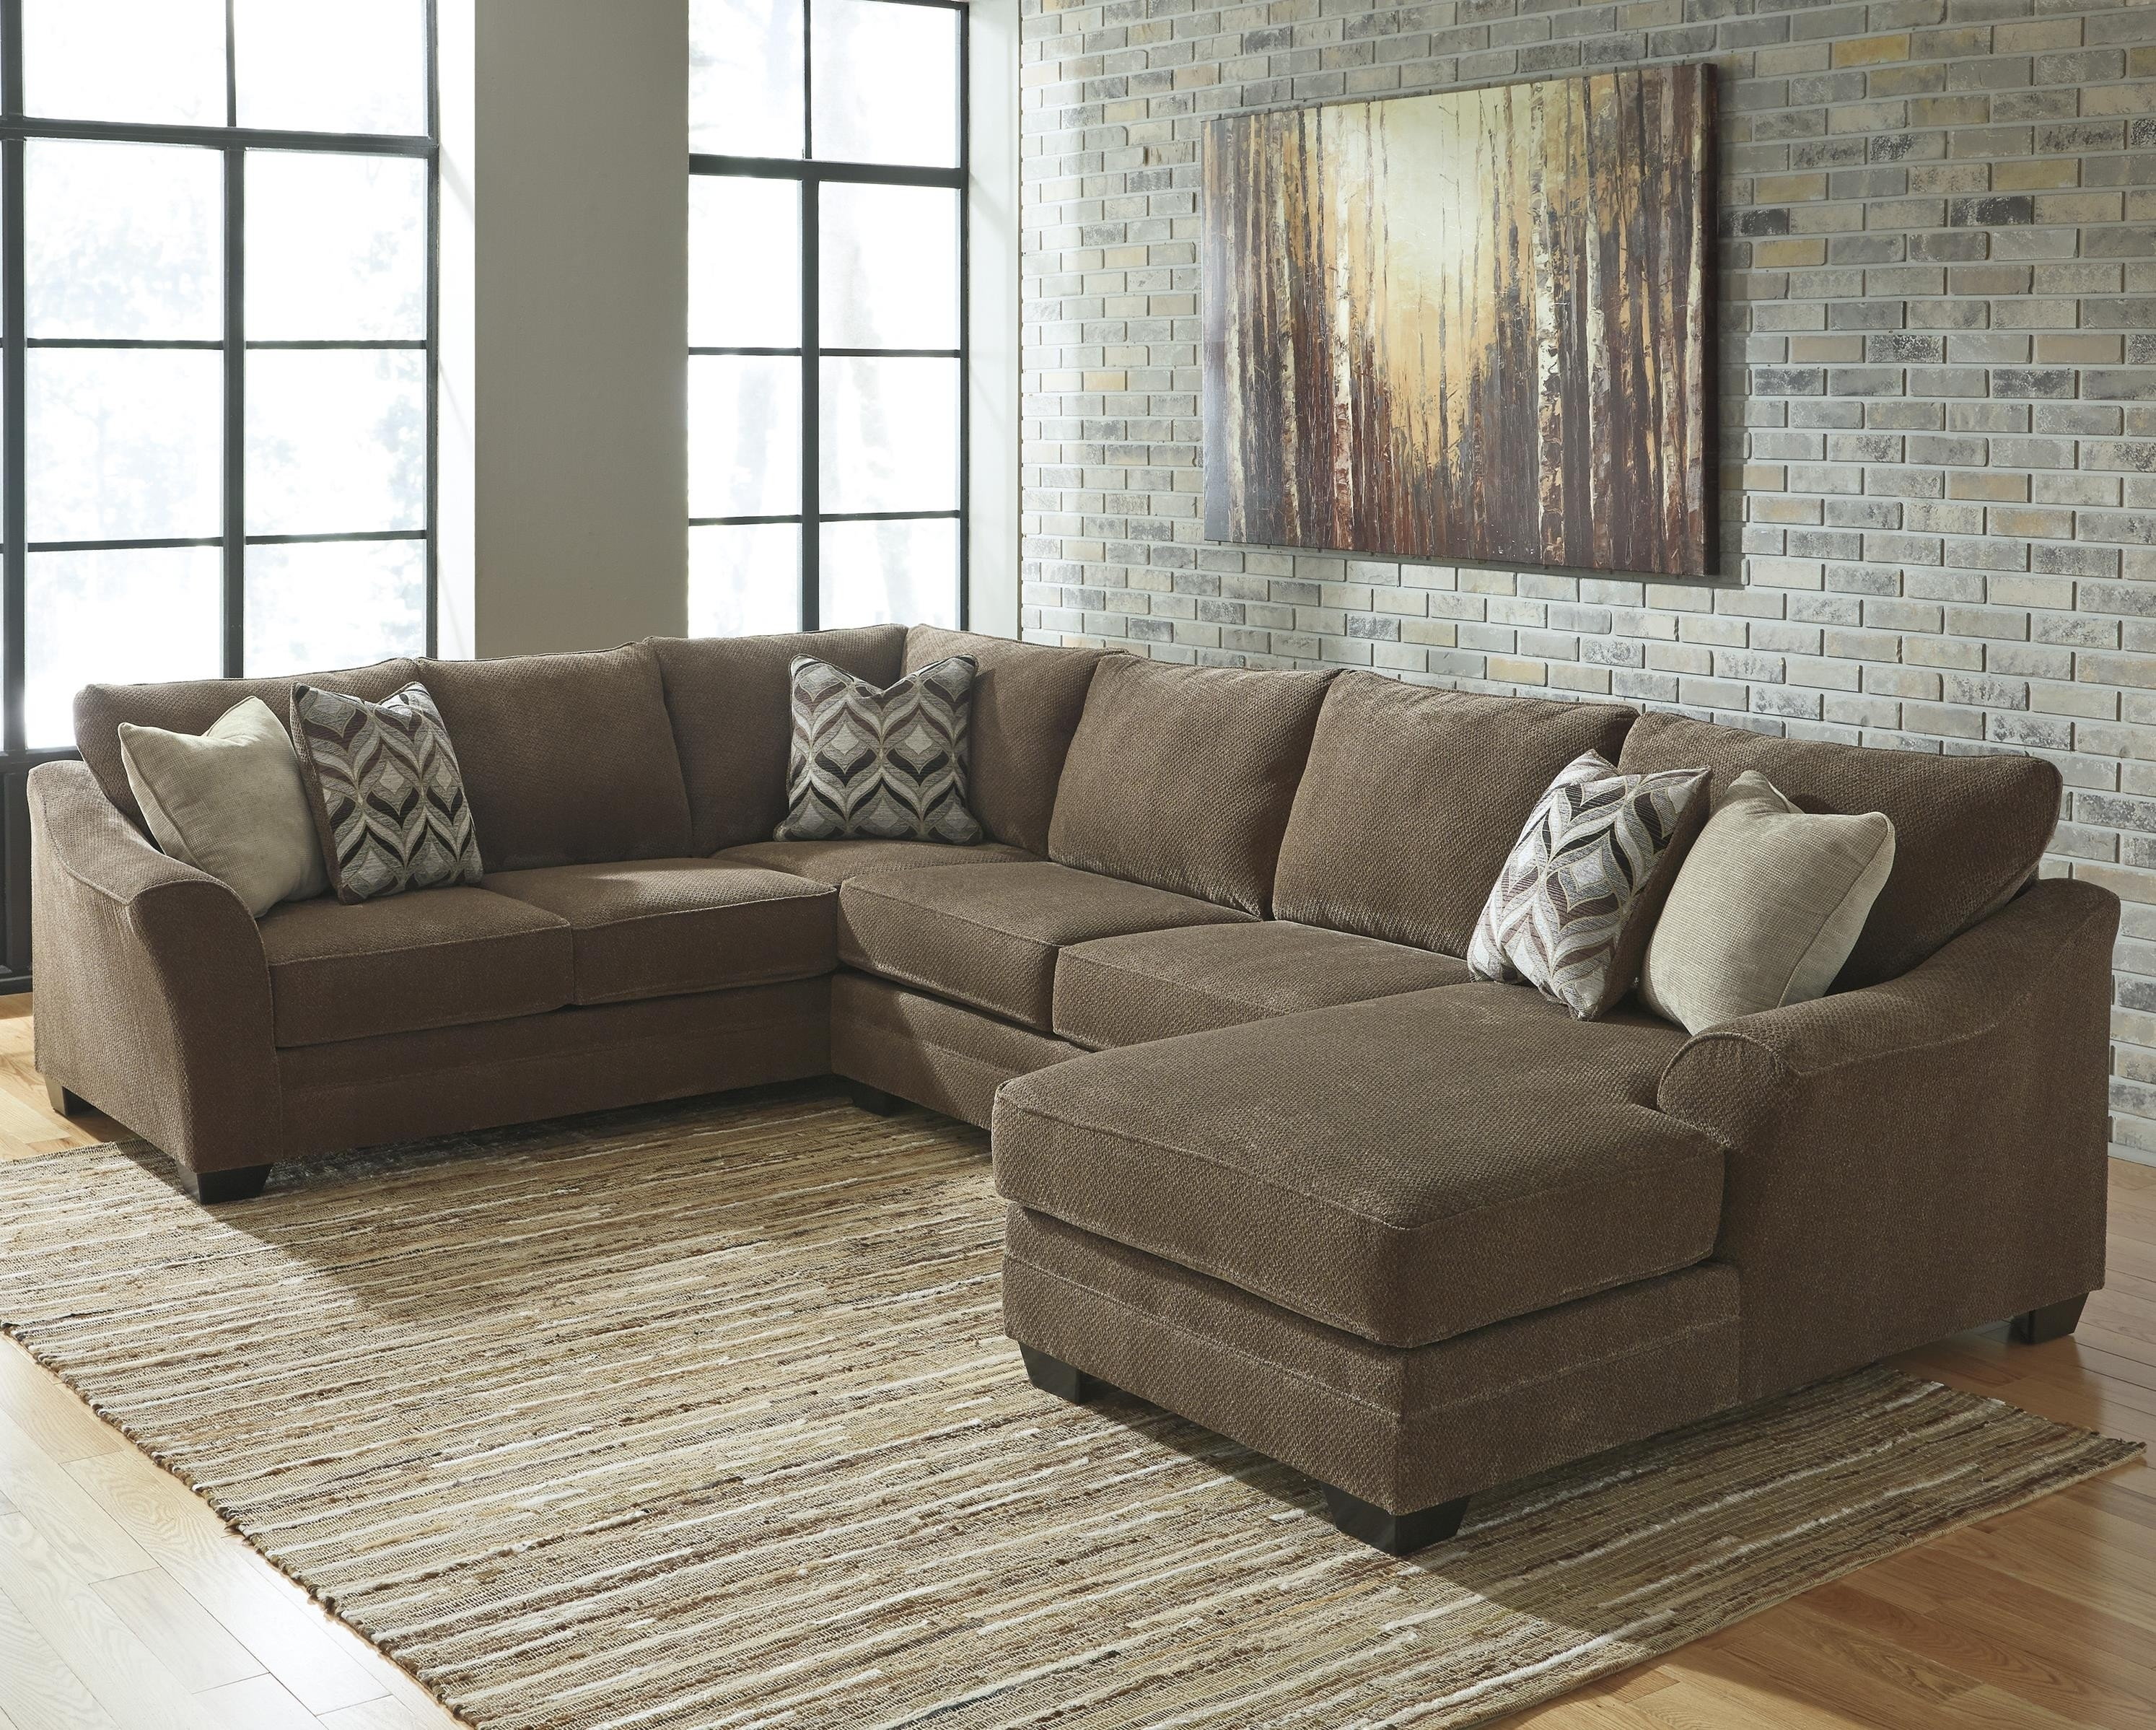 Lovely Vaughn Sectional Sofa 5Pc Dimensions – Mediasupload Intended For Vaughan Sectional Sofas (View 7 of 10)